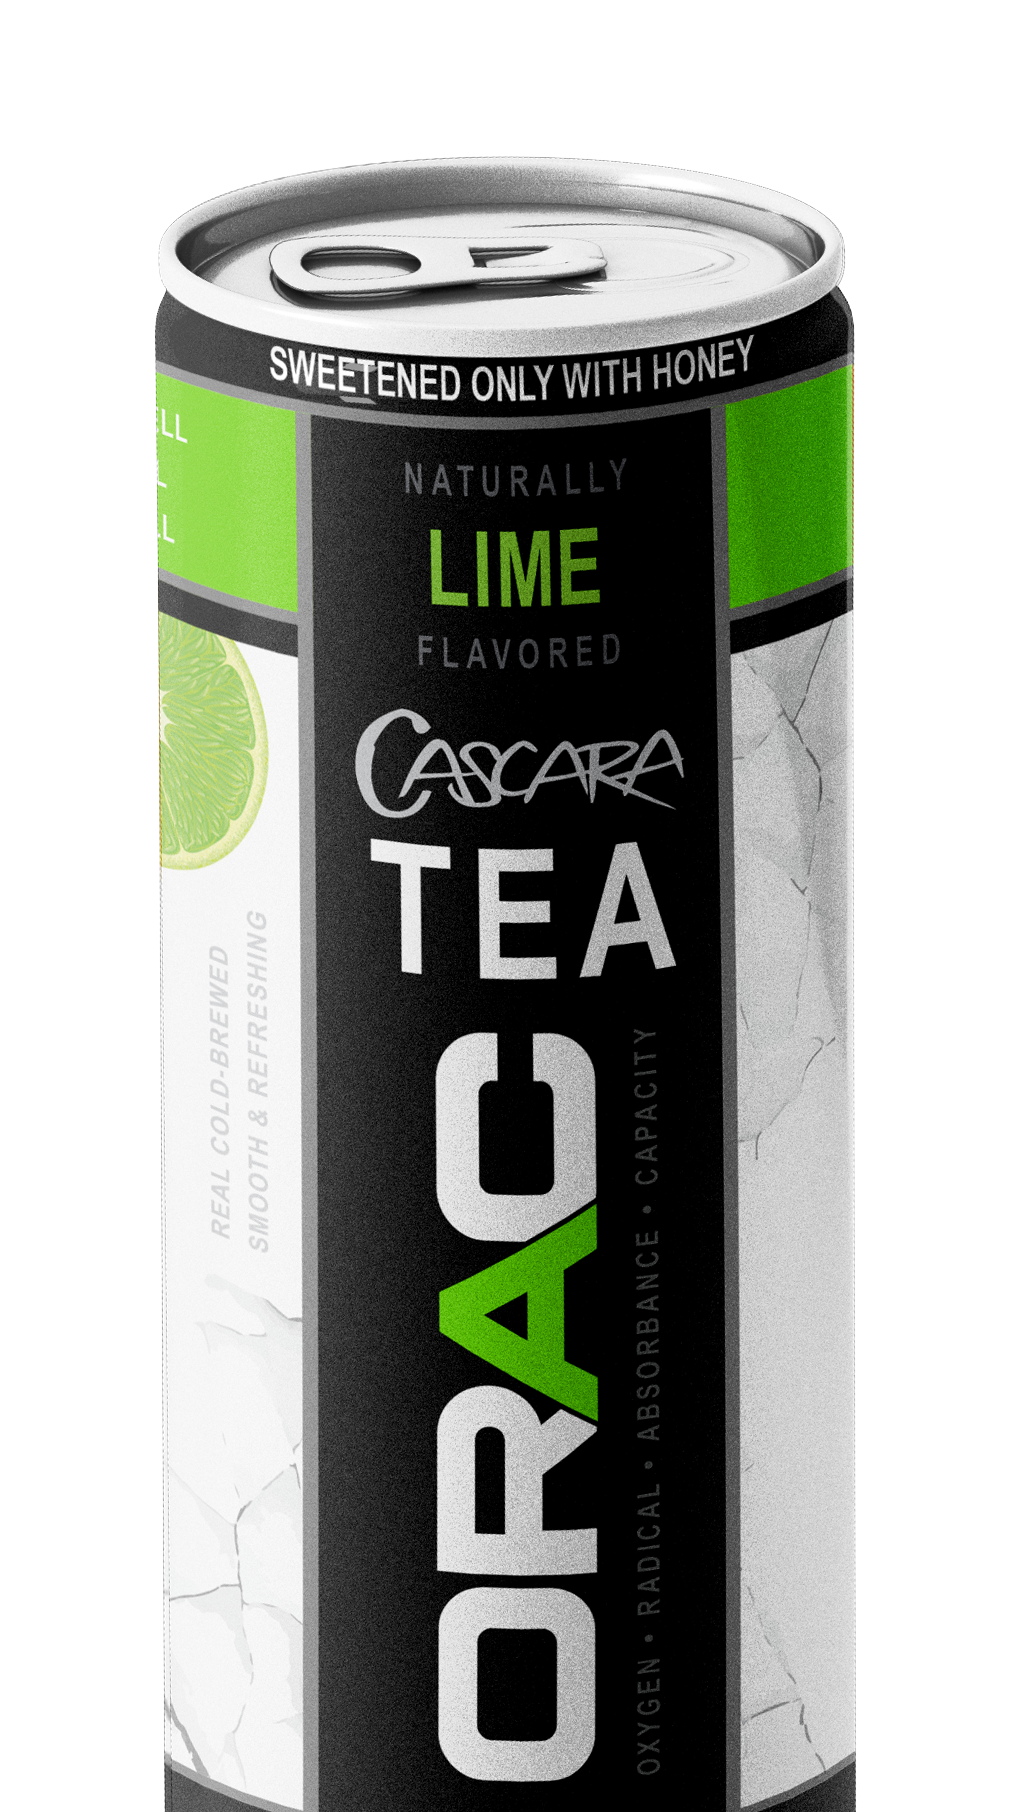 ORAC Teas | Cascara Lime Flavored